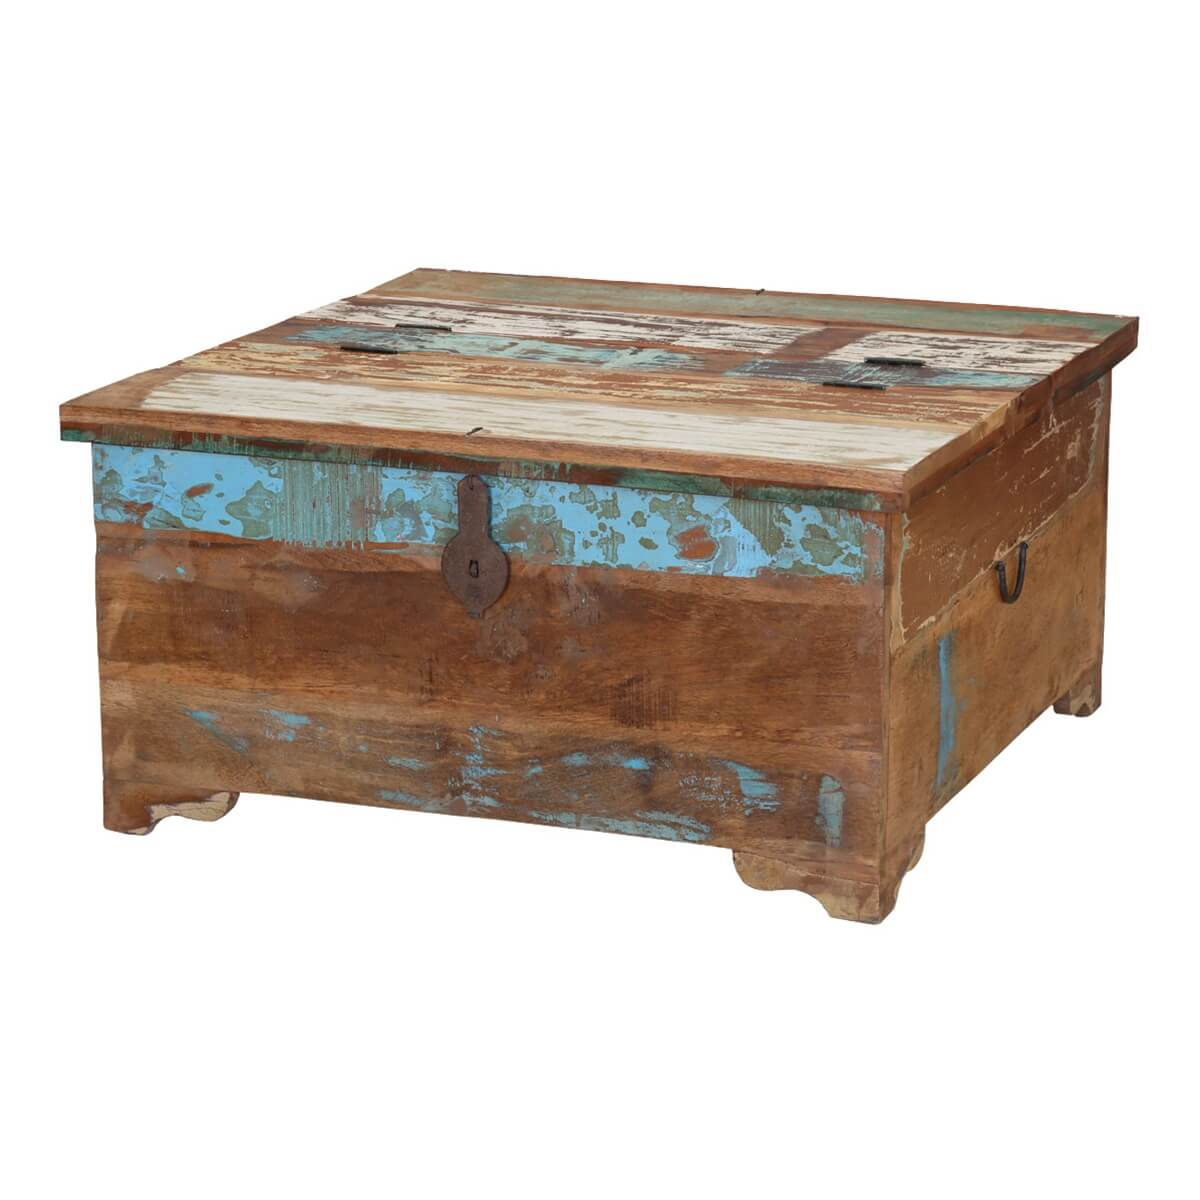 Handcrafted reclaimed wood coffee table trunks appalachia handcrafted reclaimed wood coffee table trunks geotapseo Choice Image